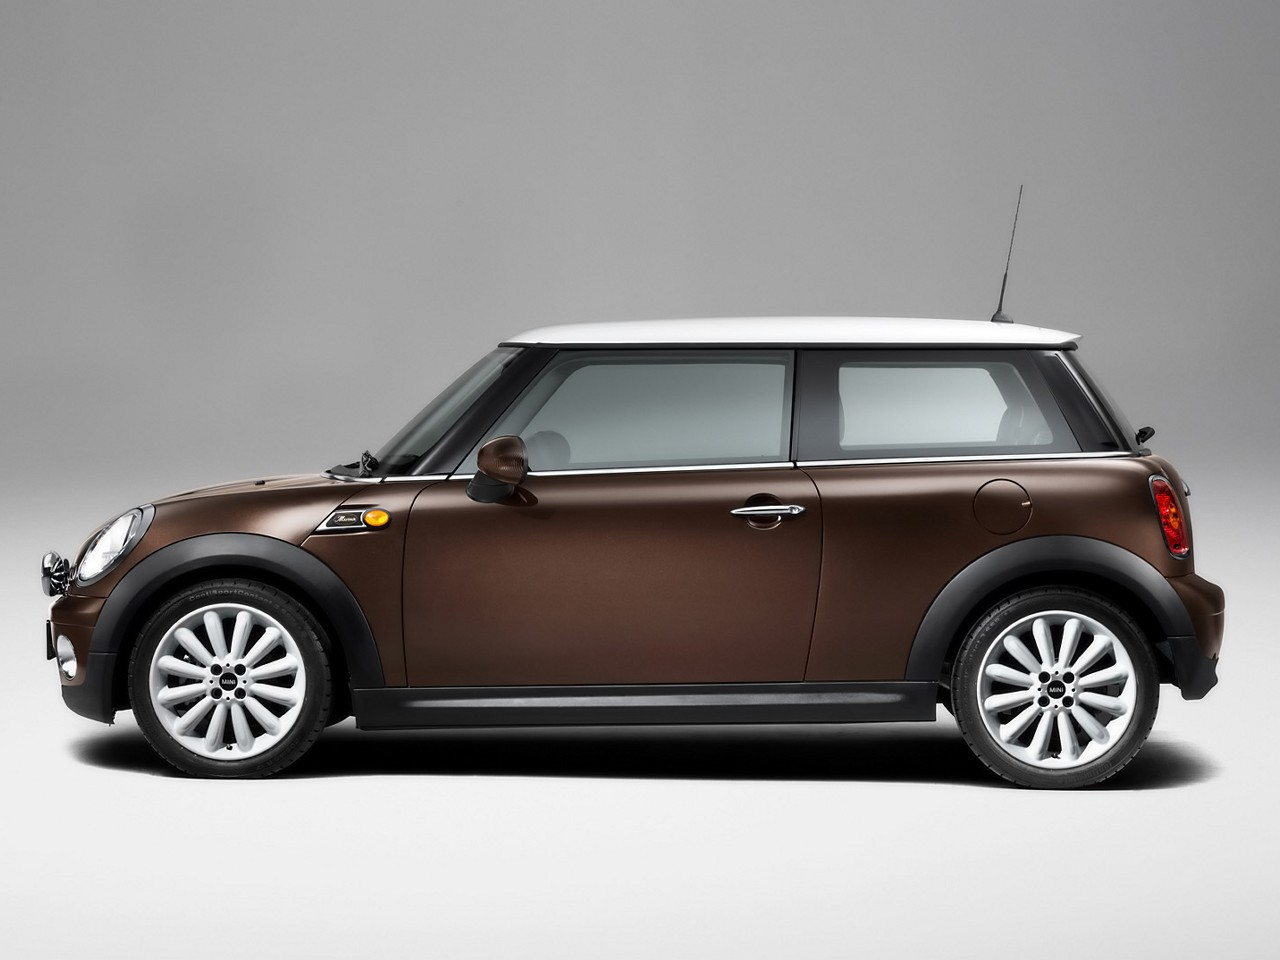 2009 mini cooper d 50 mayfair pictures. Black Bedroom Furniture Sets. Home Design Ideas